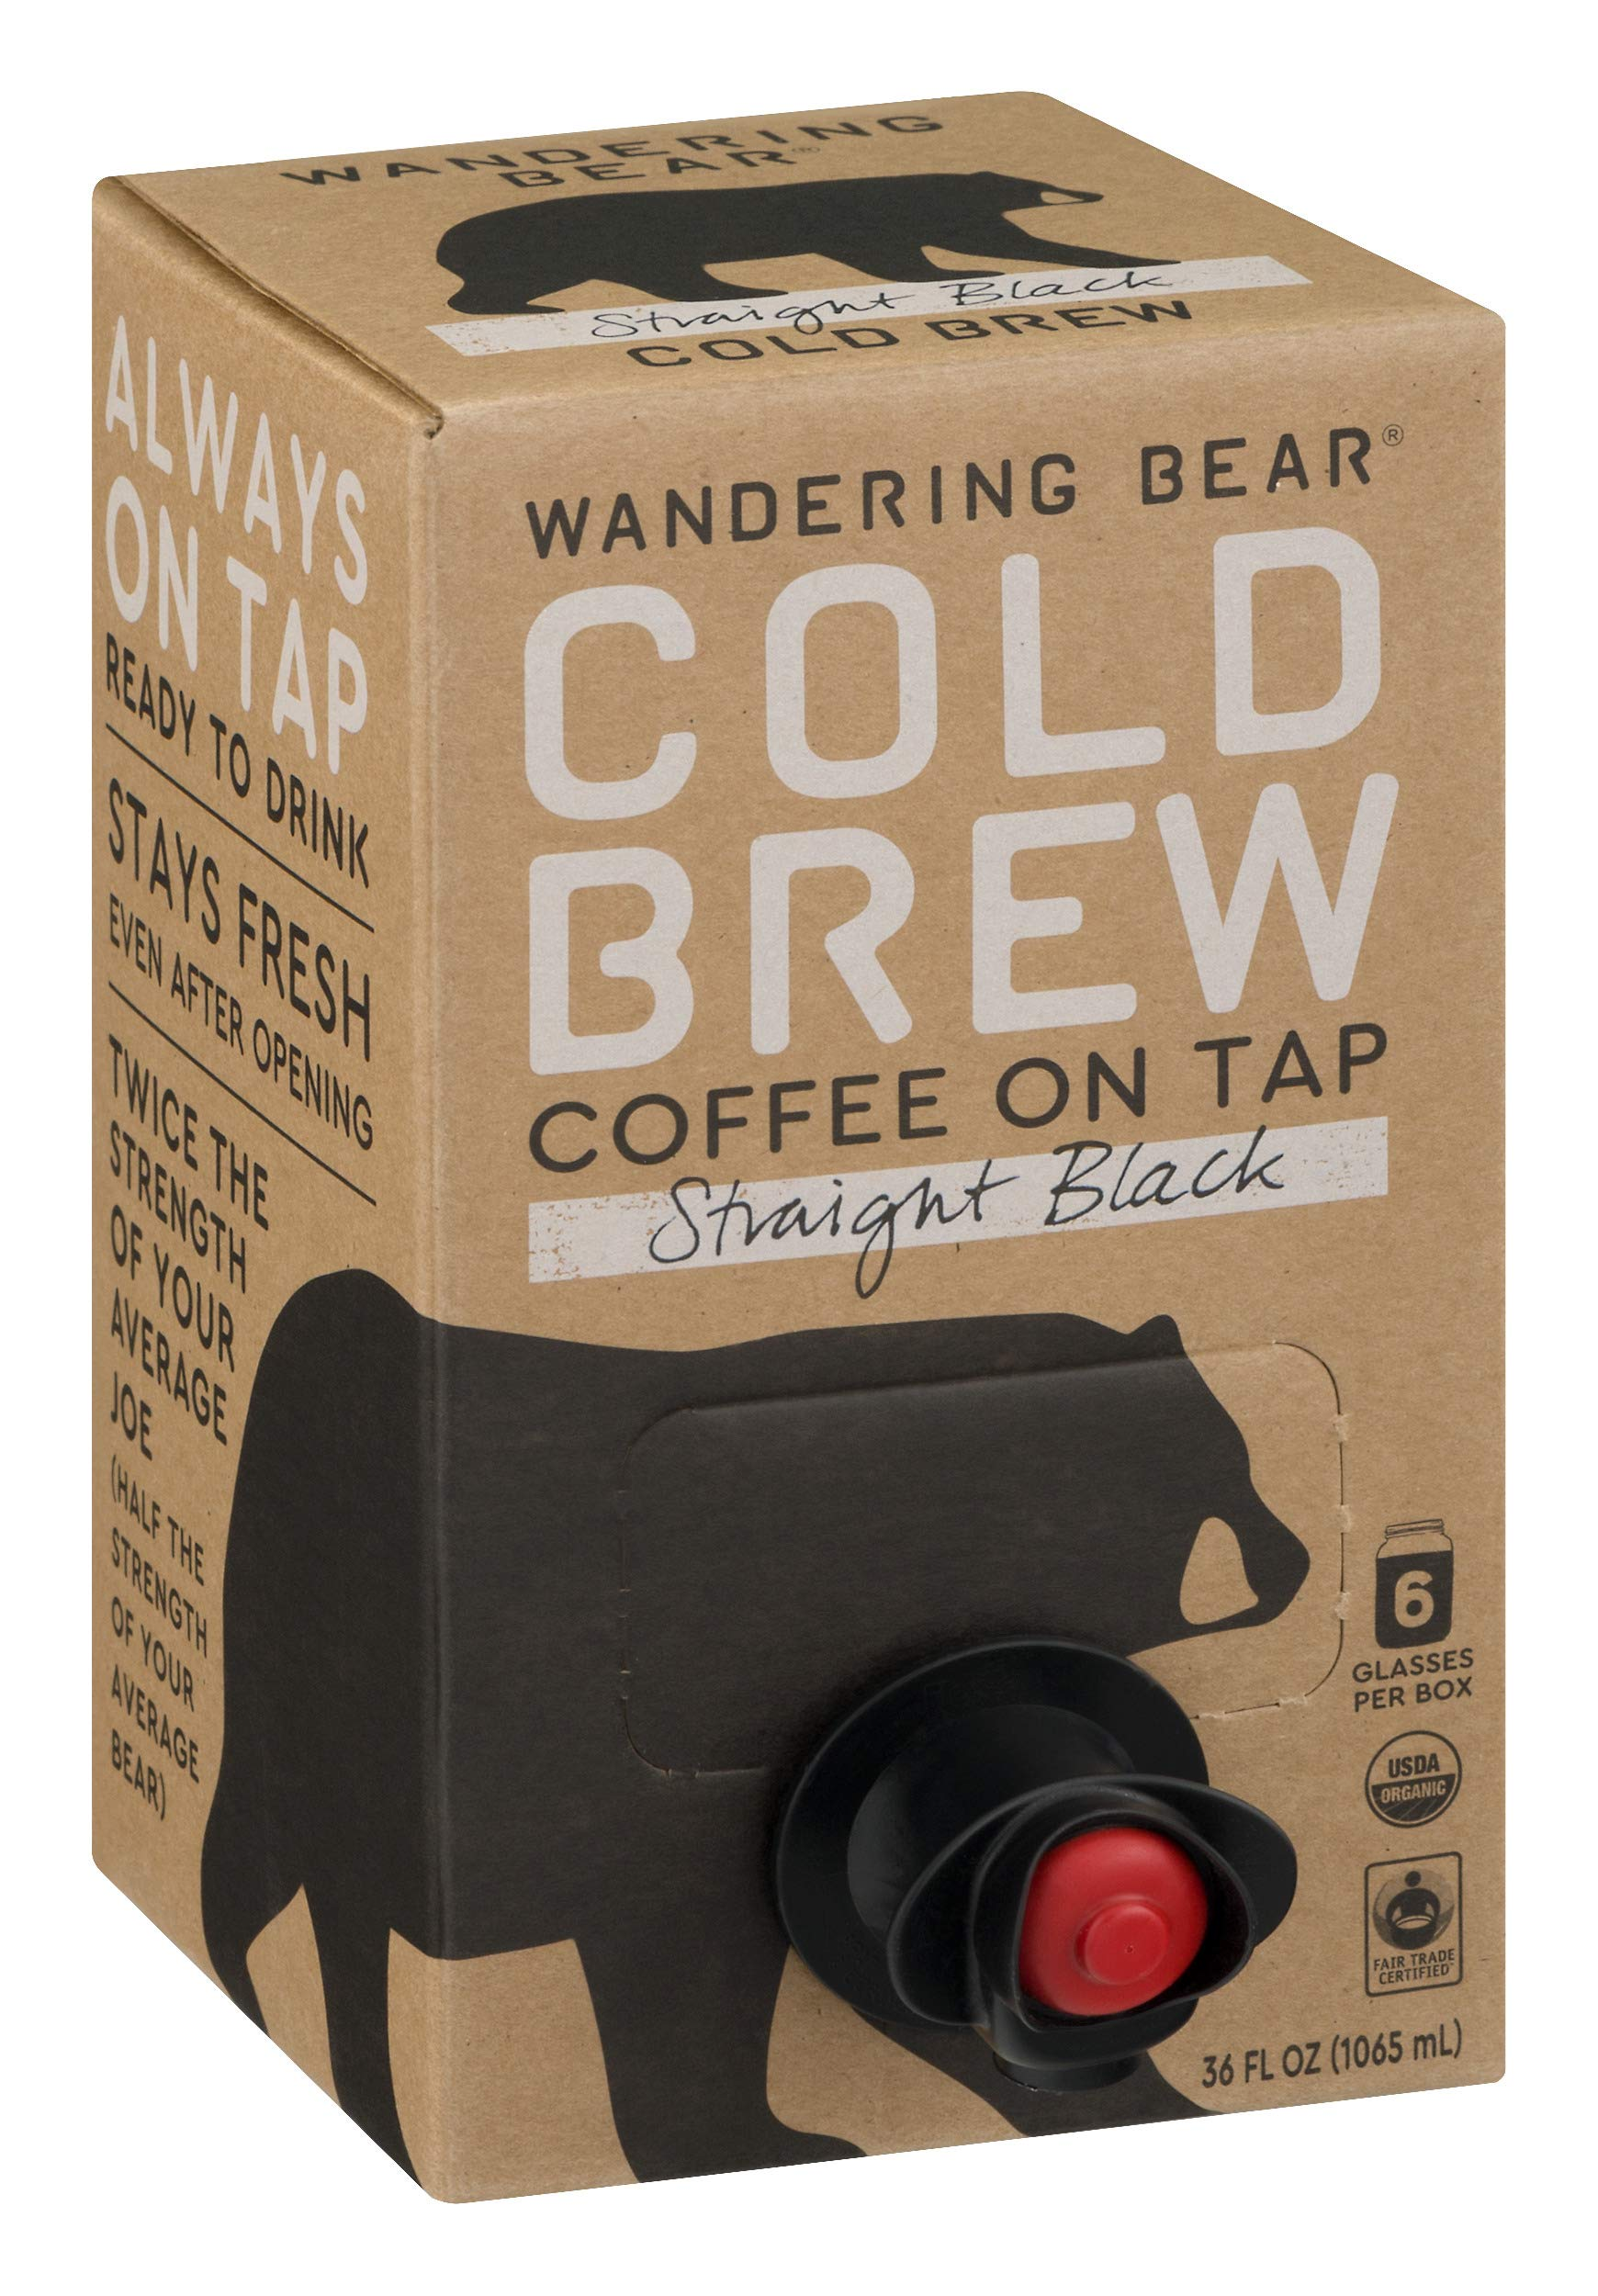 Wandering Bear Organic Cold Brew Coffee On Tap, Straight Black, No Sugar, Always Fresh and Ready to Drink, Not a Concentrate, 36 fl oz